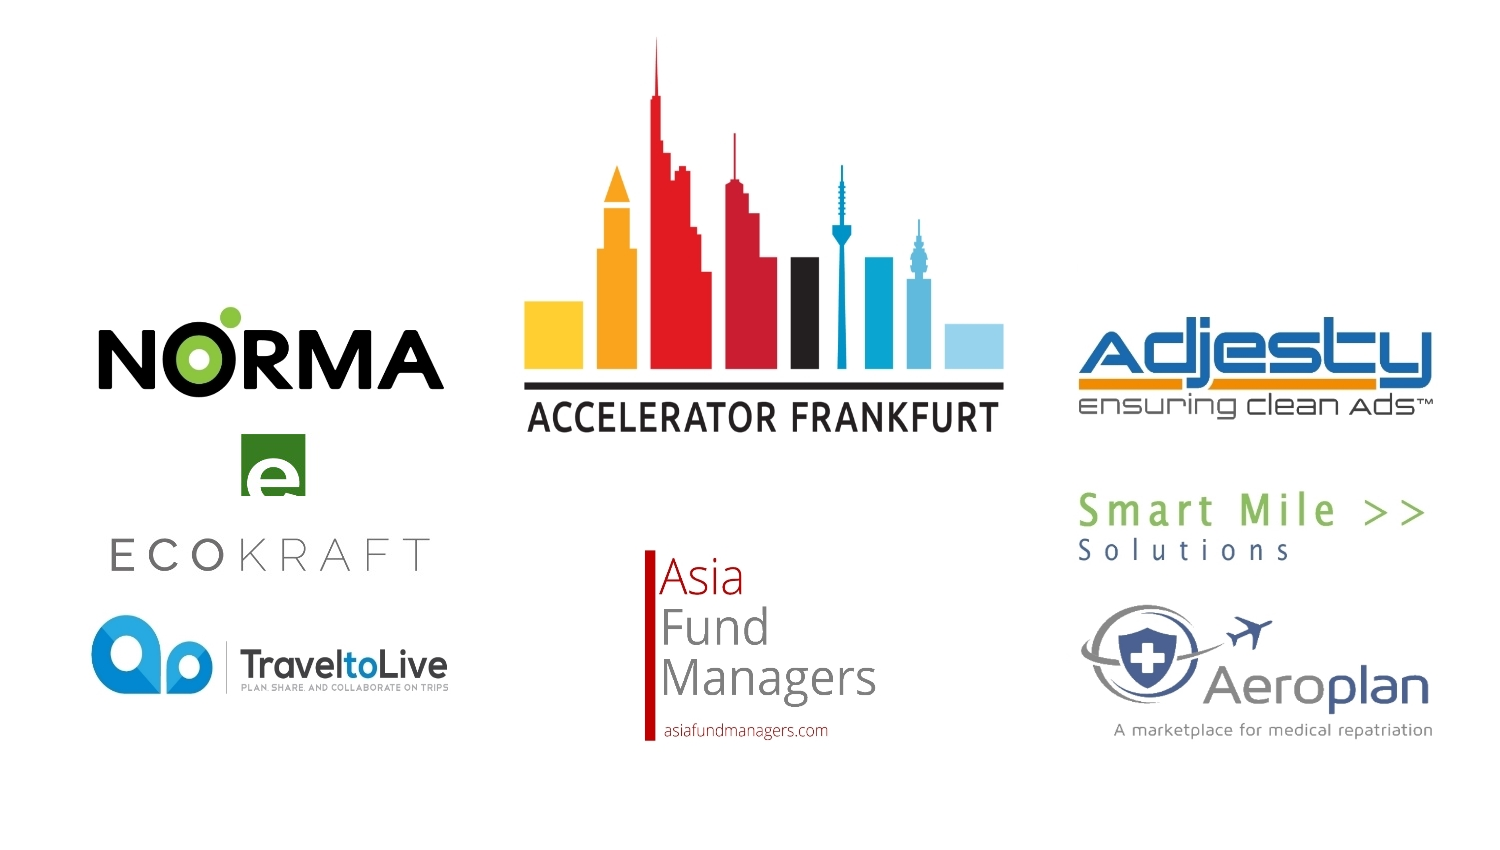 https://www.acceleratorfrankfurt.com/wp-content/uploads/2017/05/AF-second-wave-hor2.png